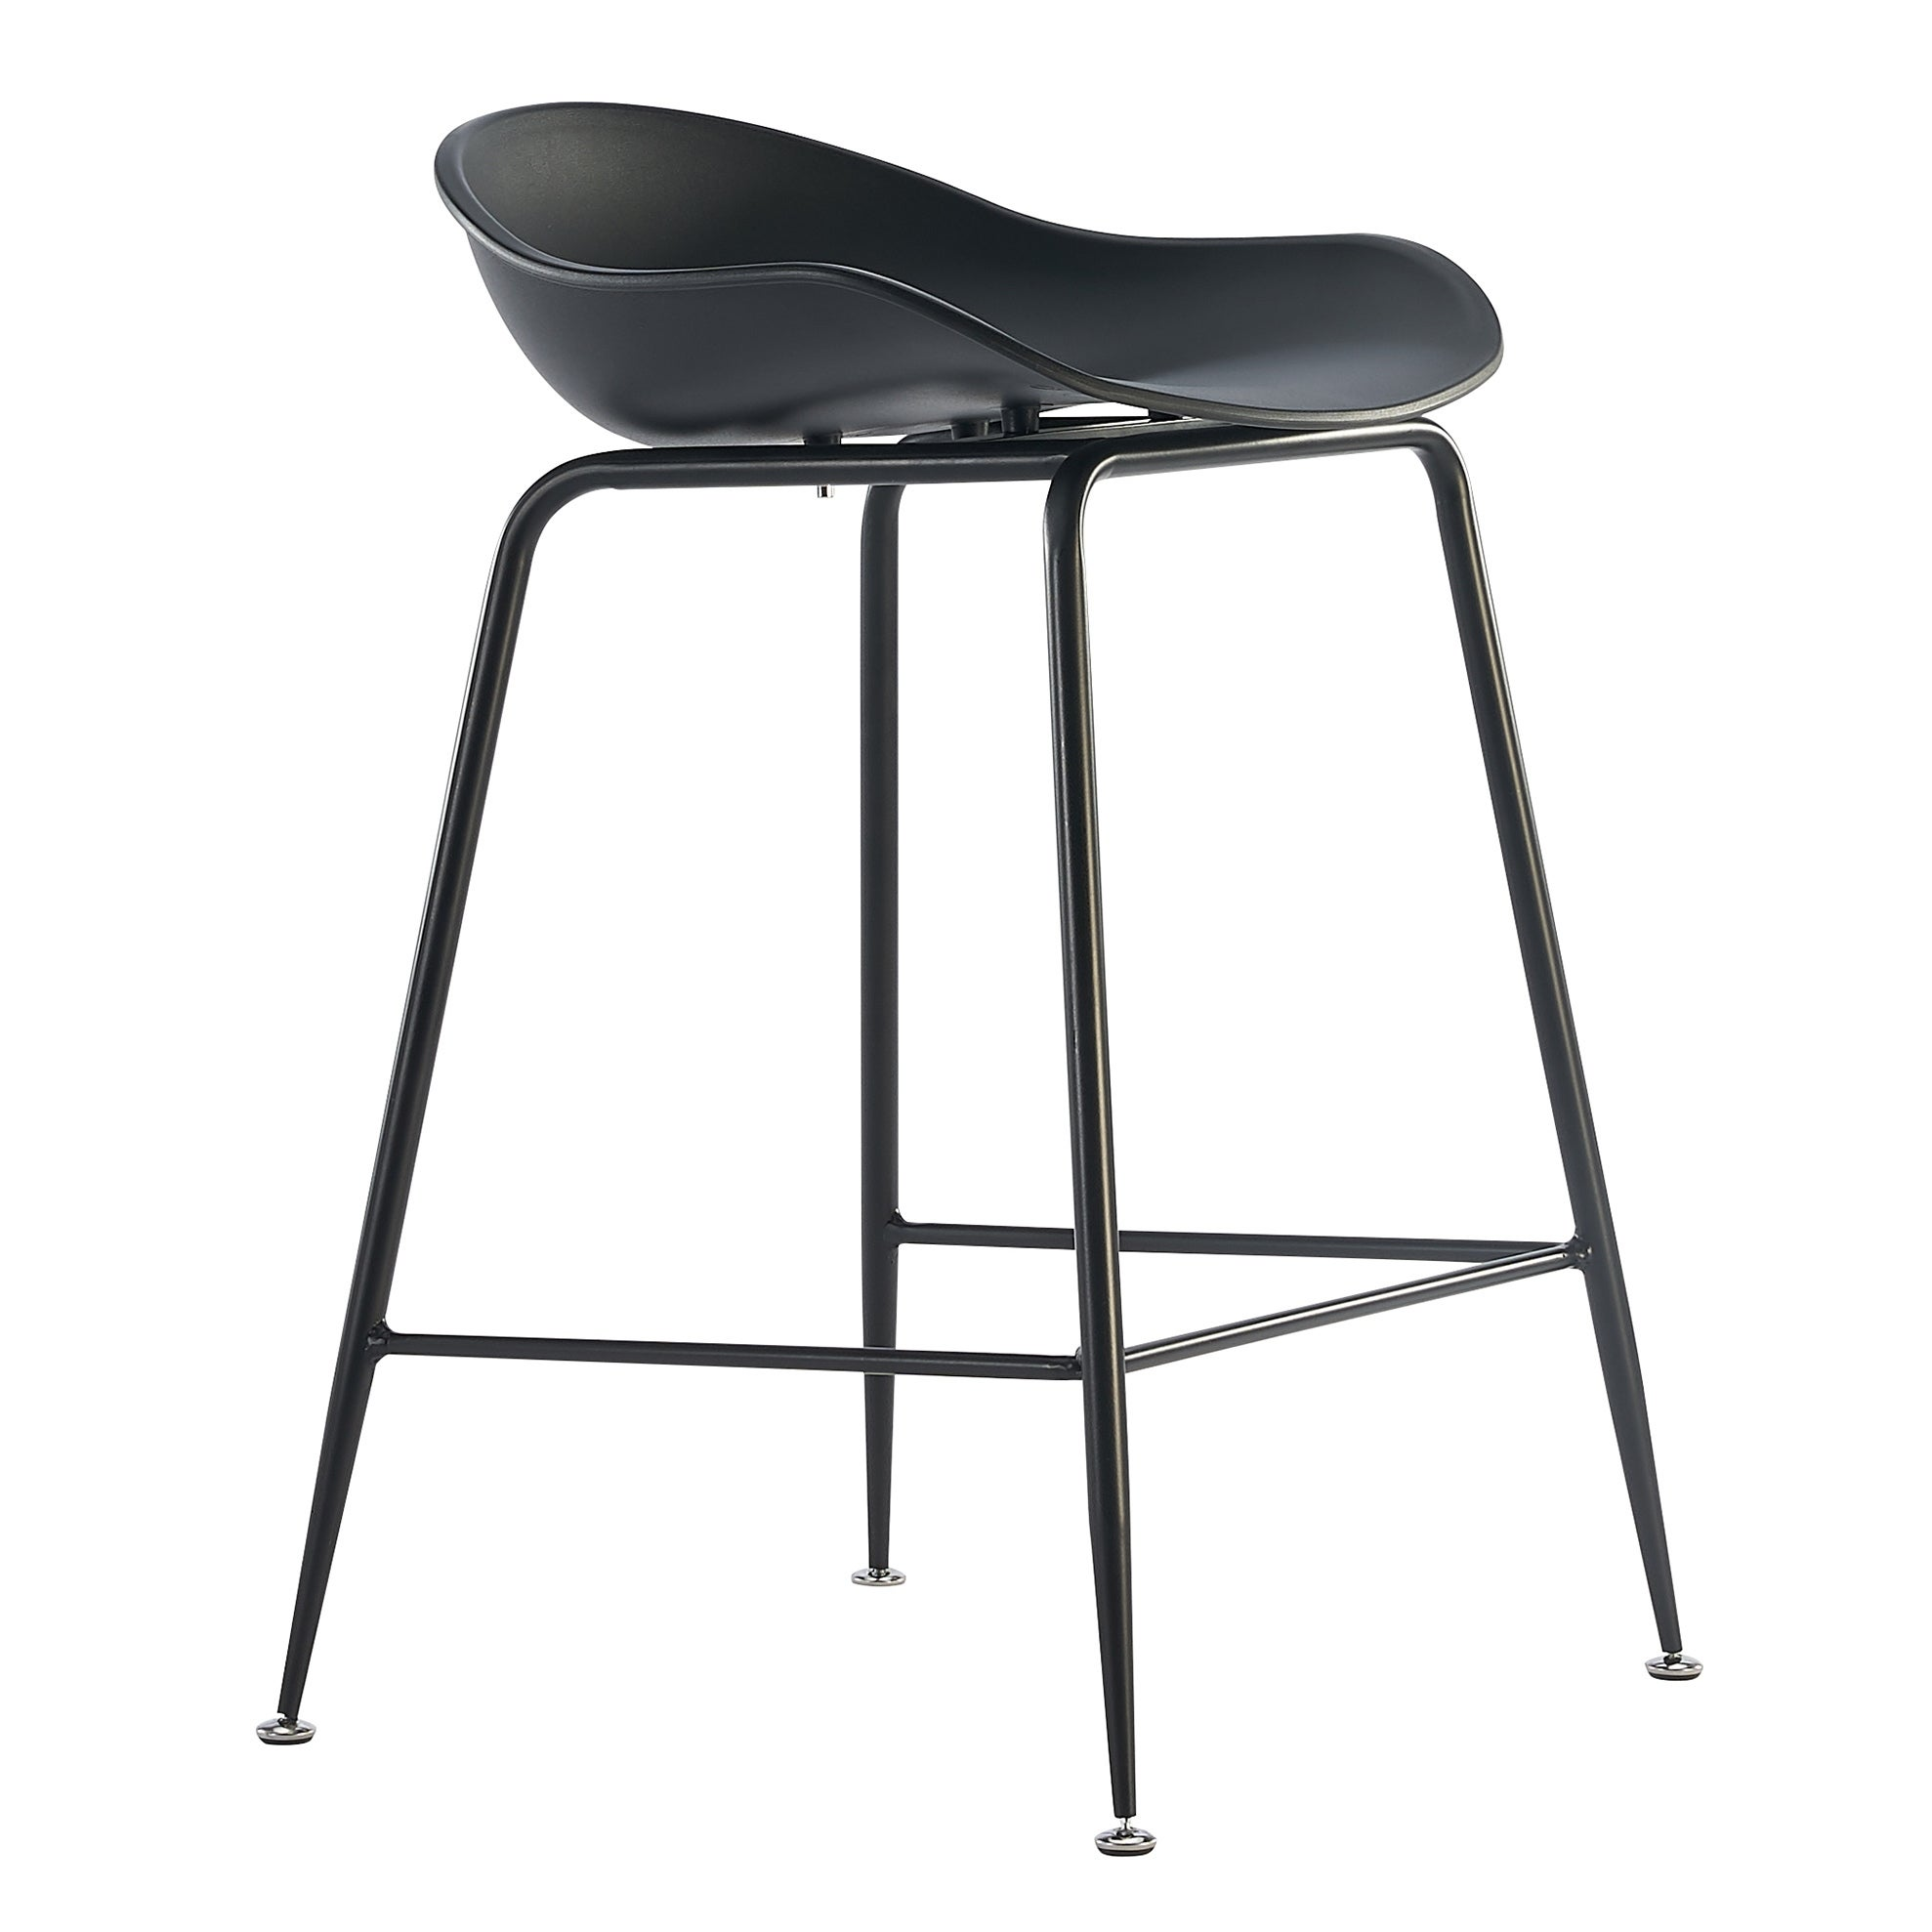 Image of: Shop Black Friday Deals On 25 Seat Height Molded Plastic Bar Stool Modern Barstool Counter Stools With Backs And Armless Metal Legs On Sale Overstock 28496394